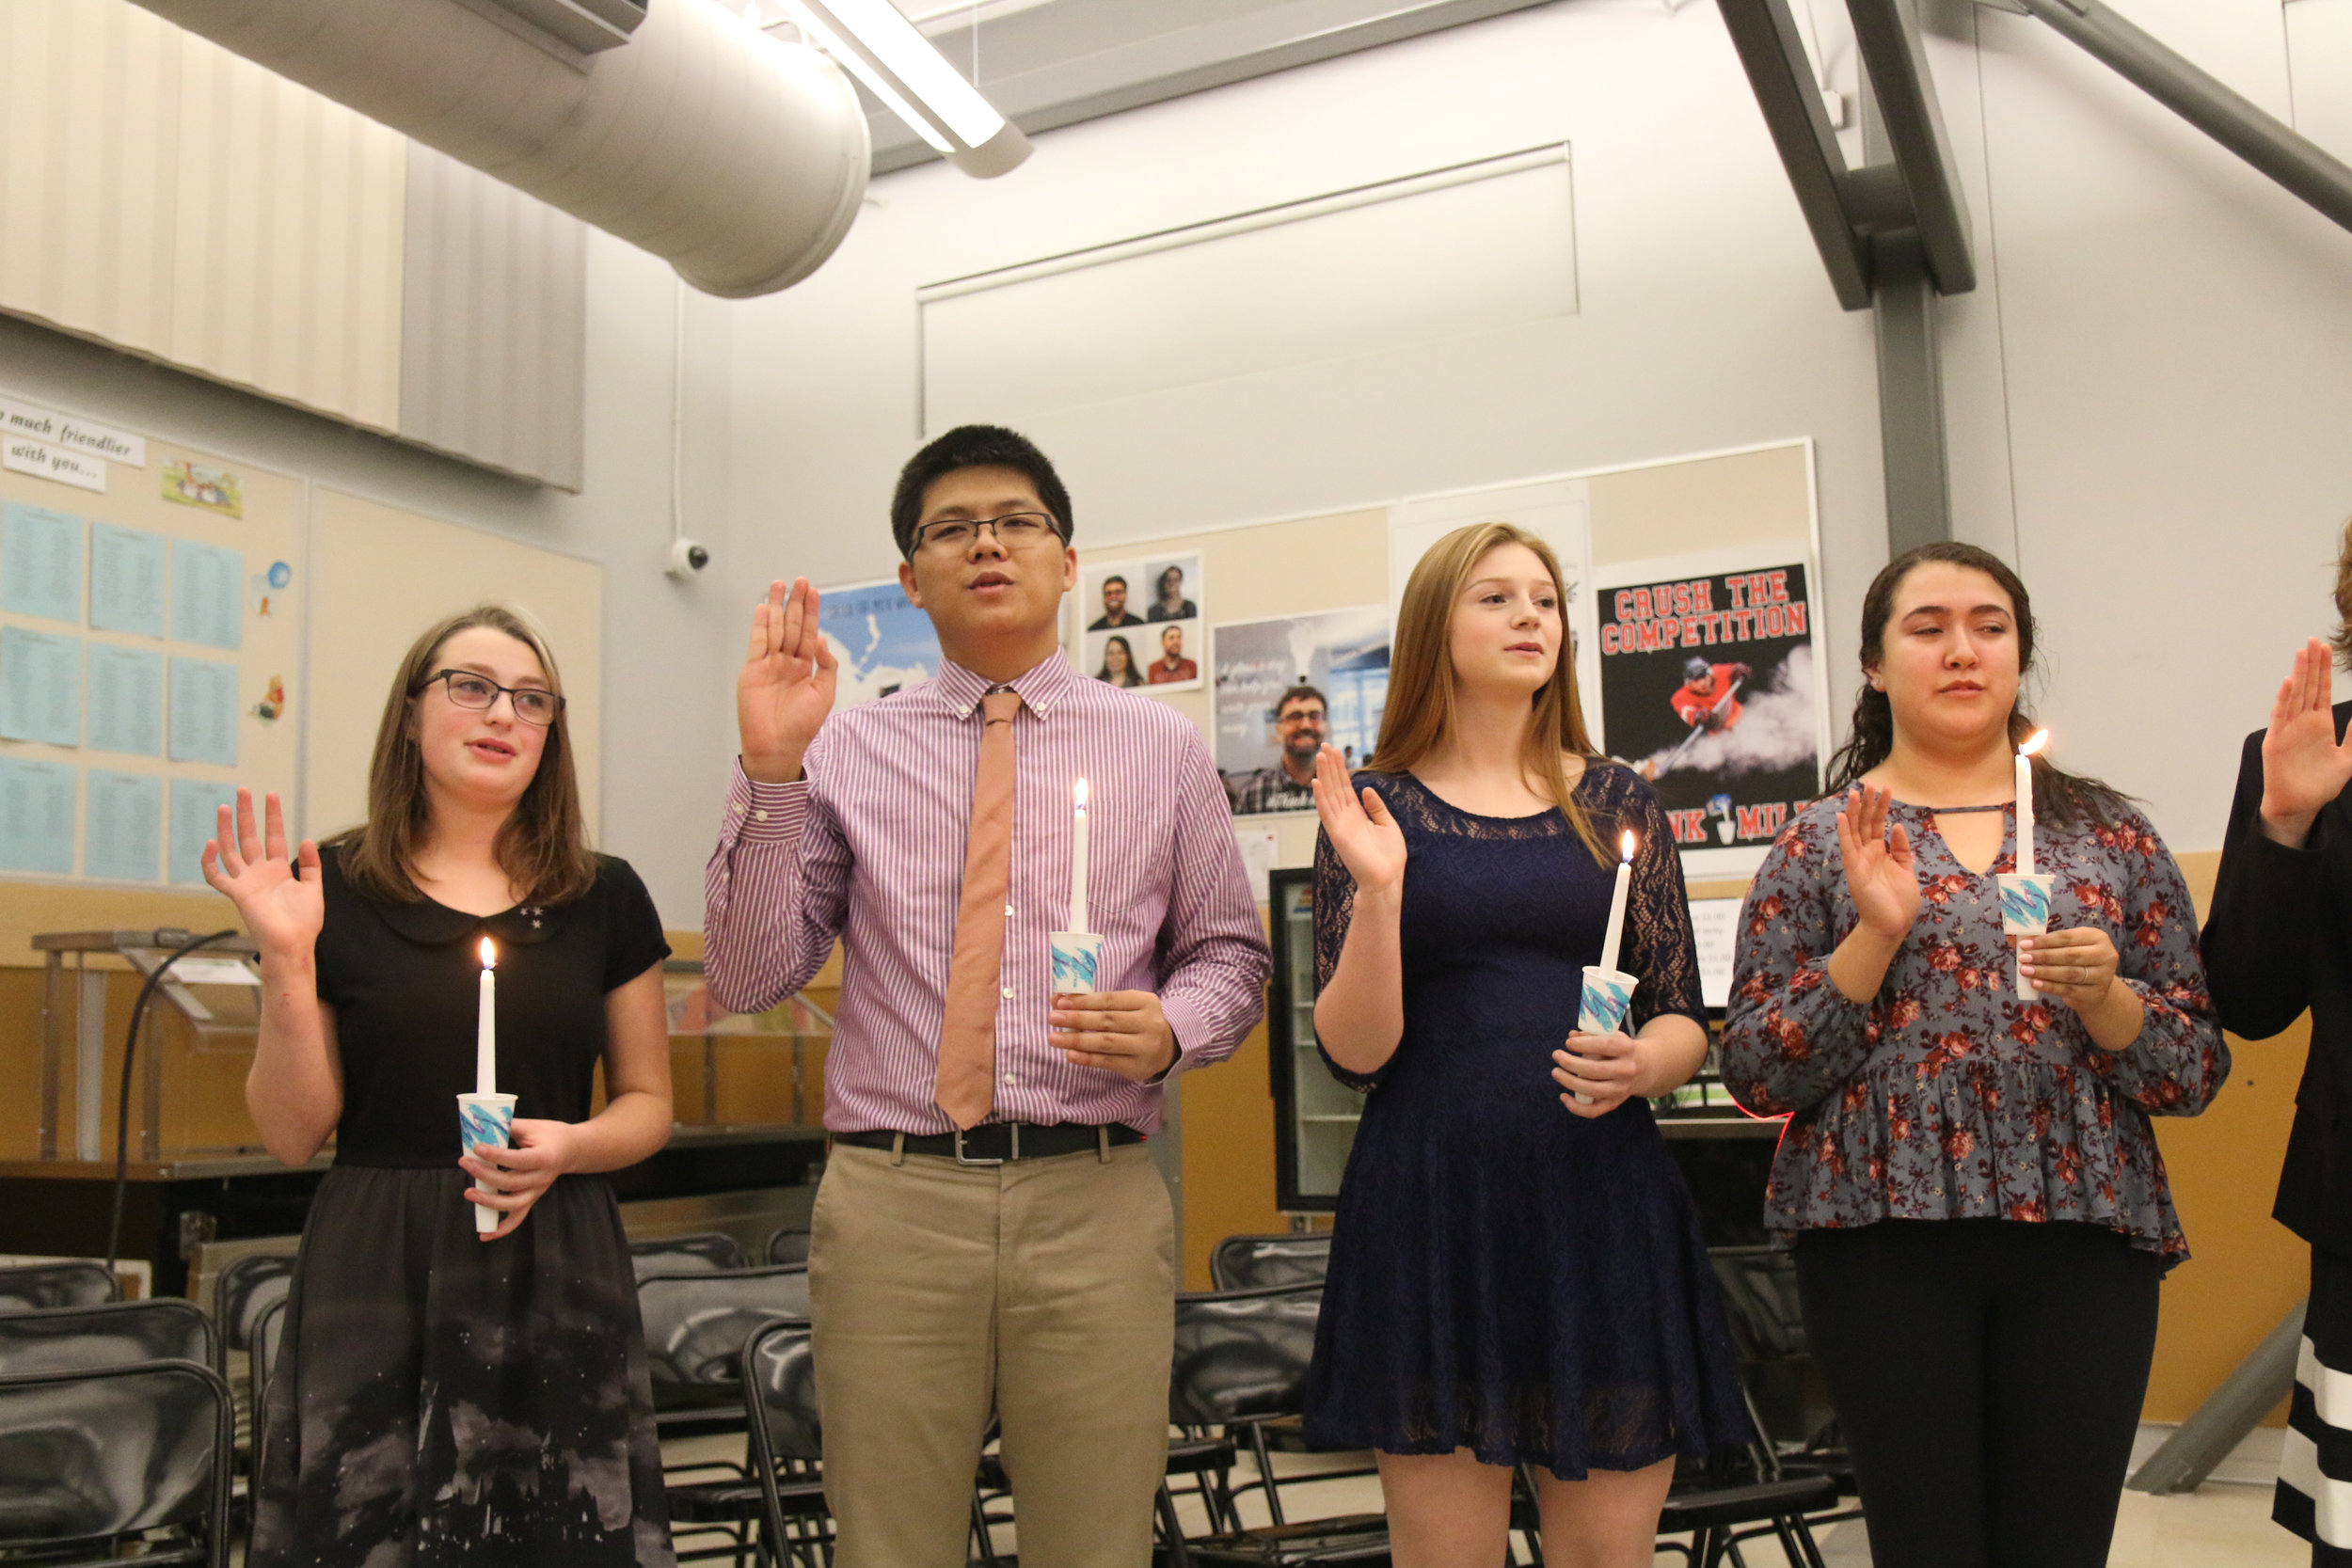 NHS Induction 2017 (37 of 71).jpg